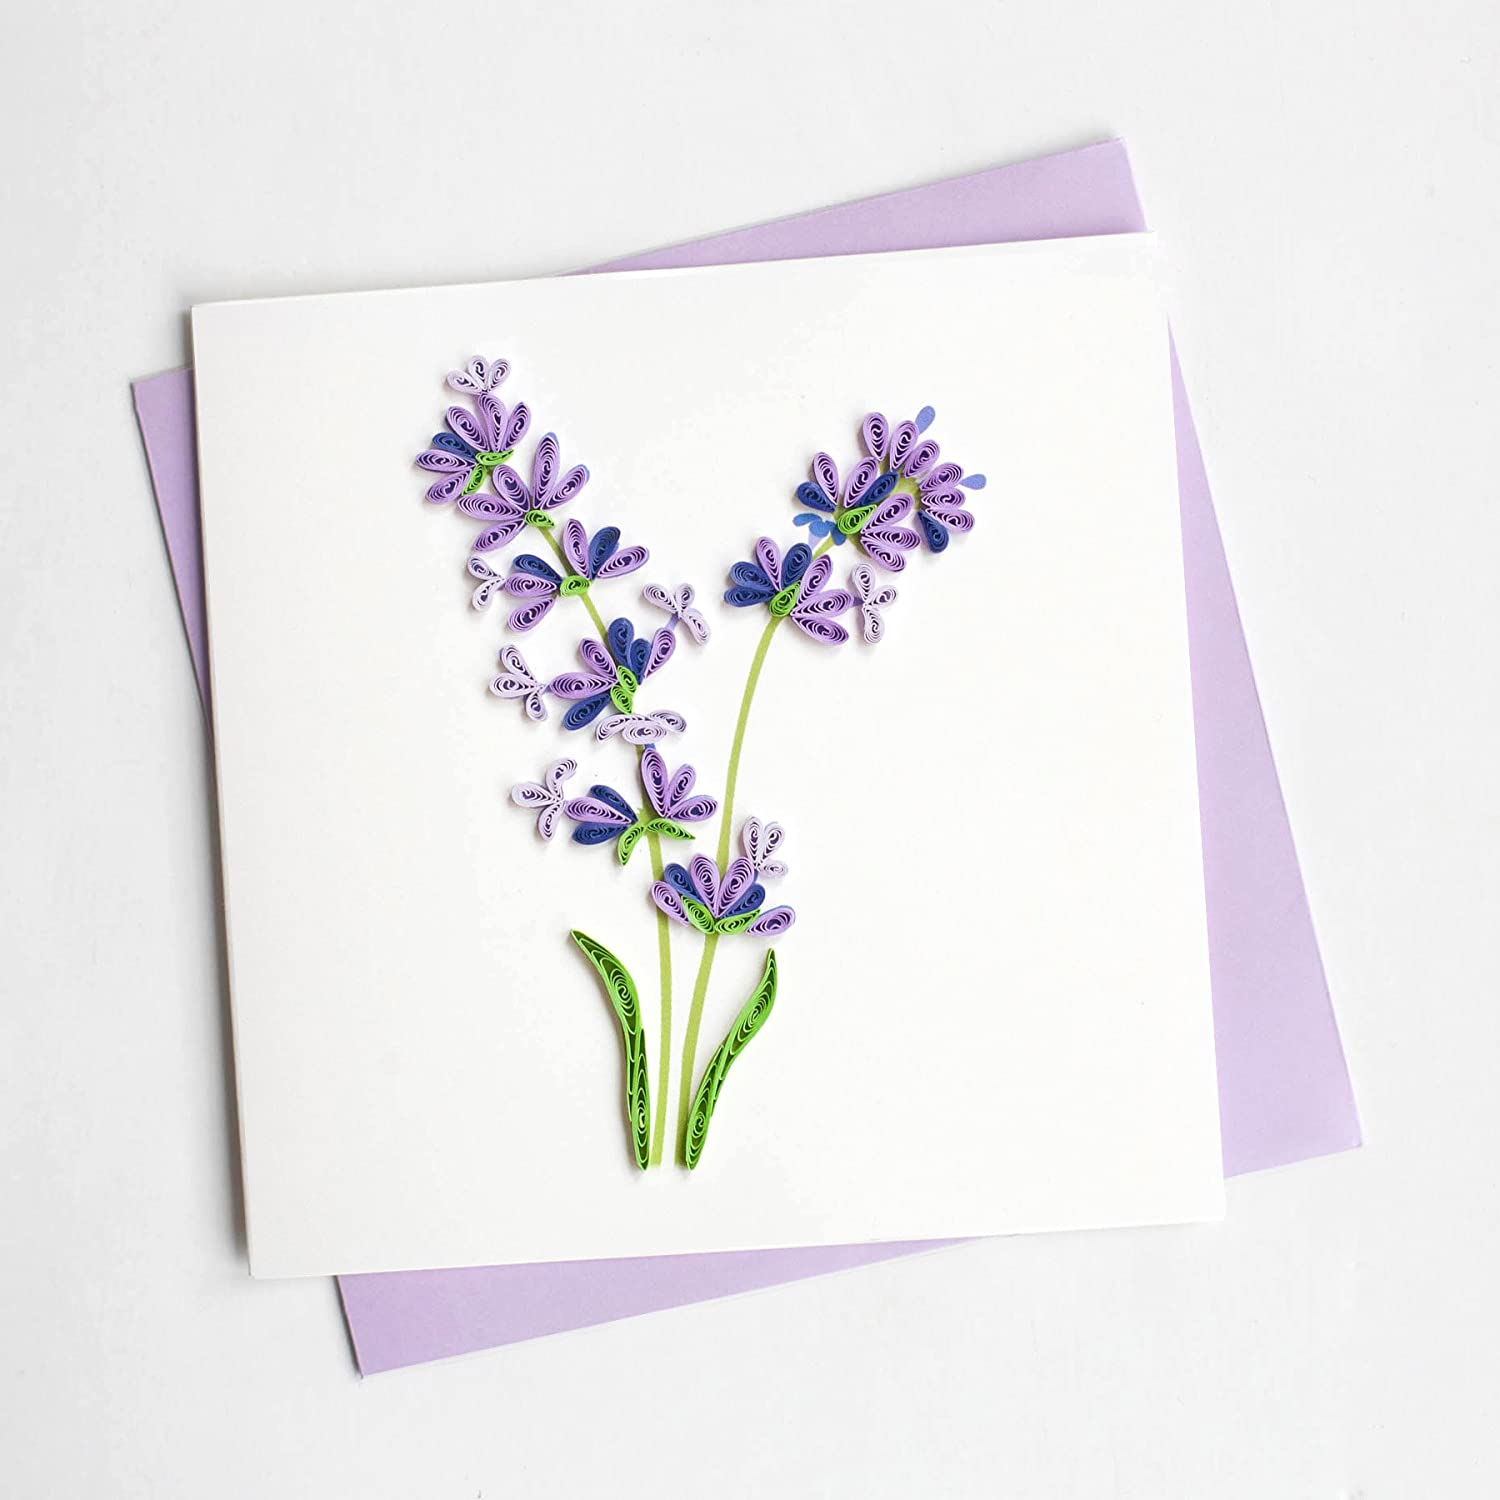 Iris Create-a-Quill DIY Quilling Card Kit